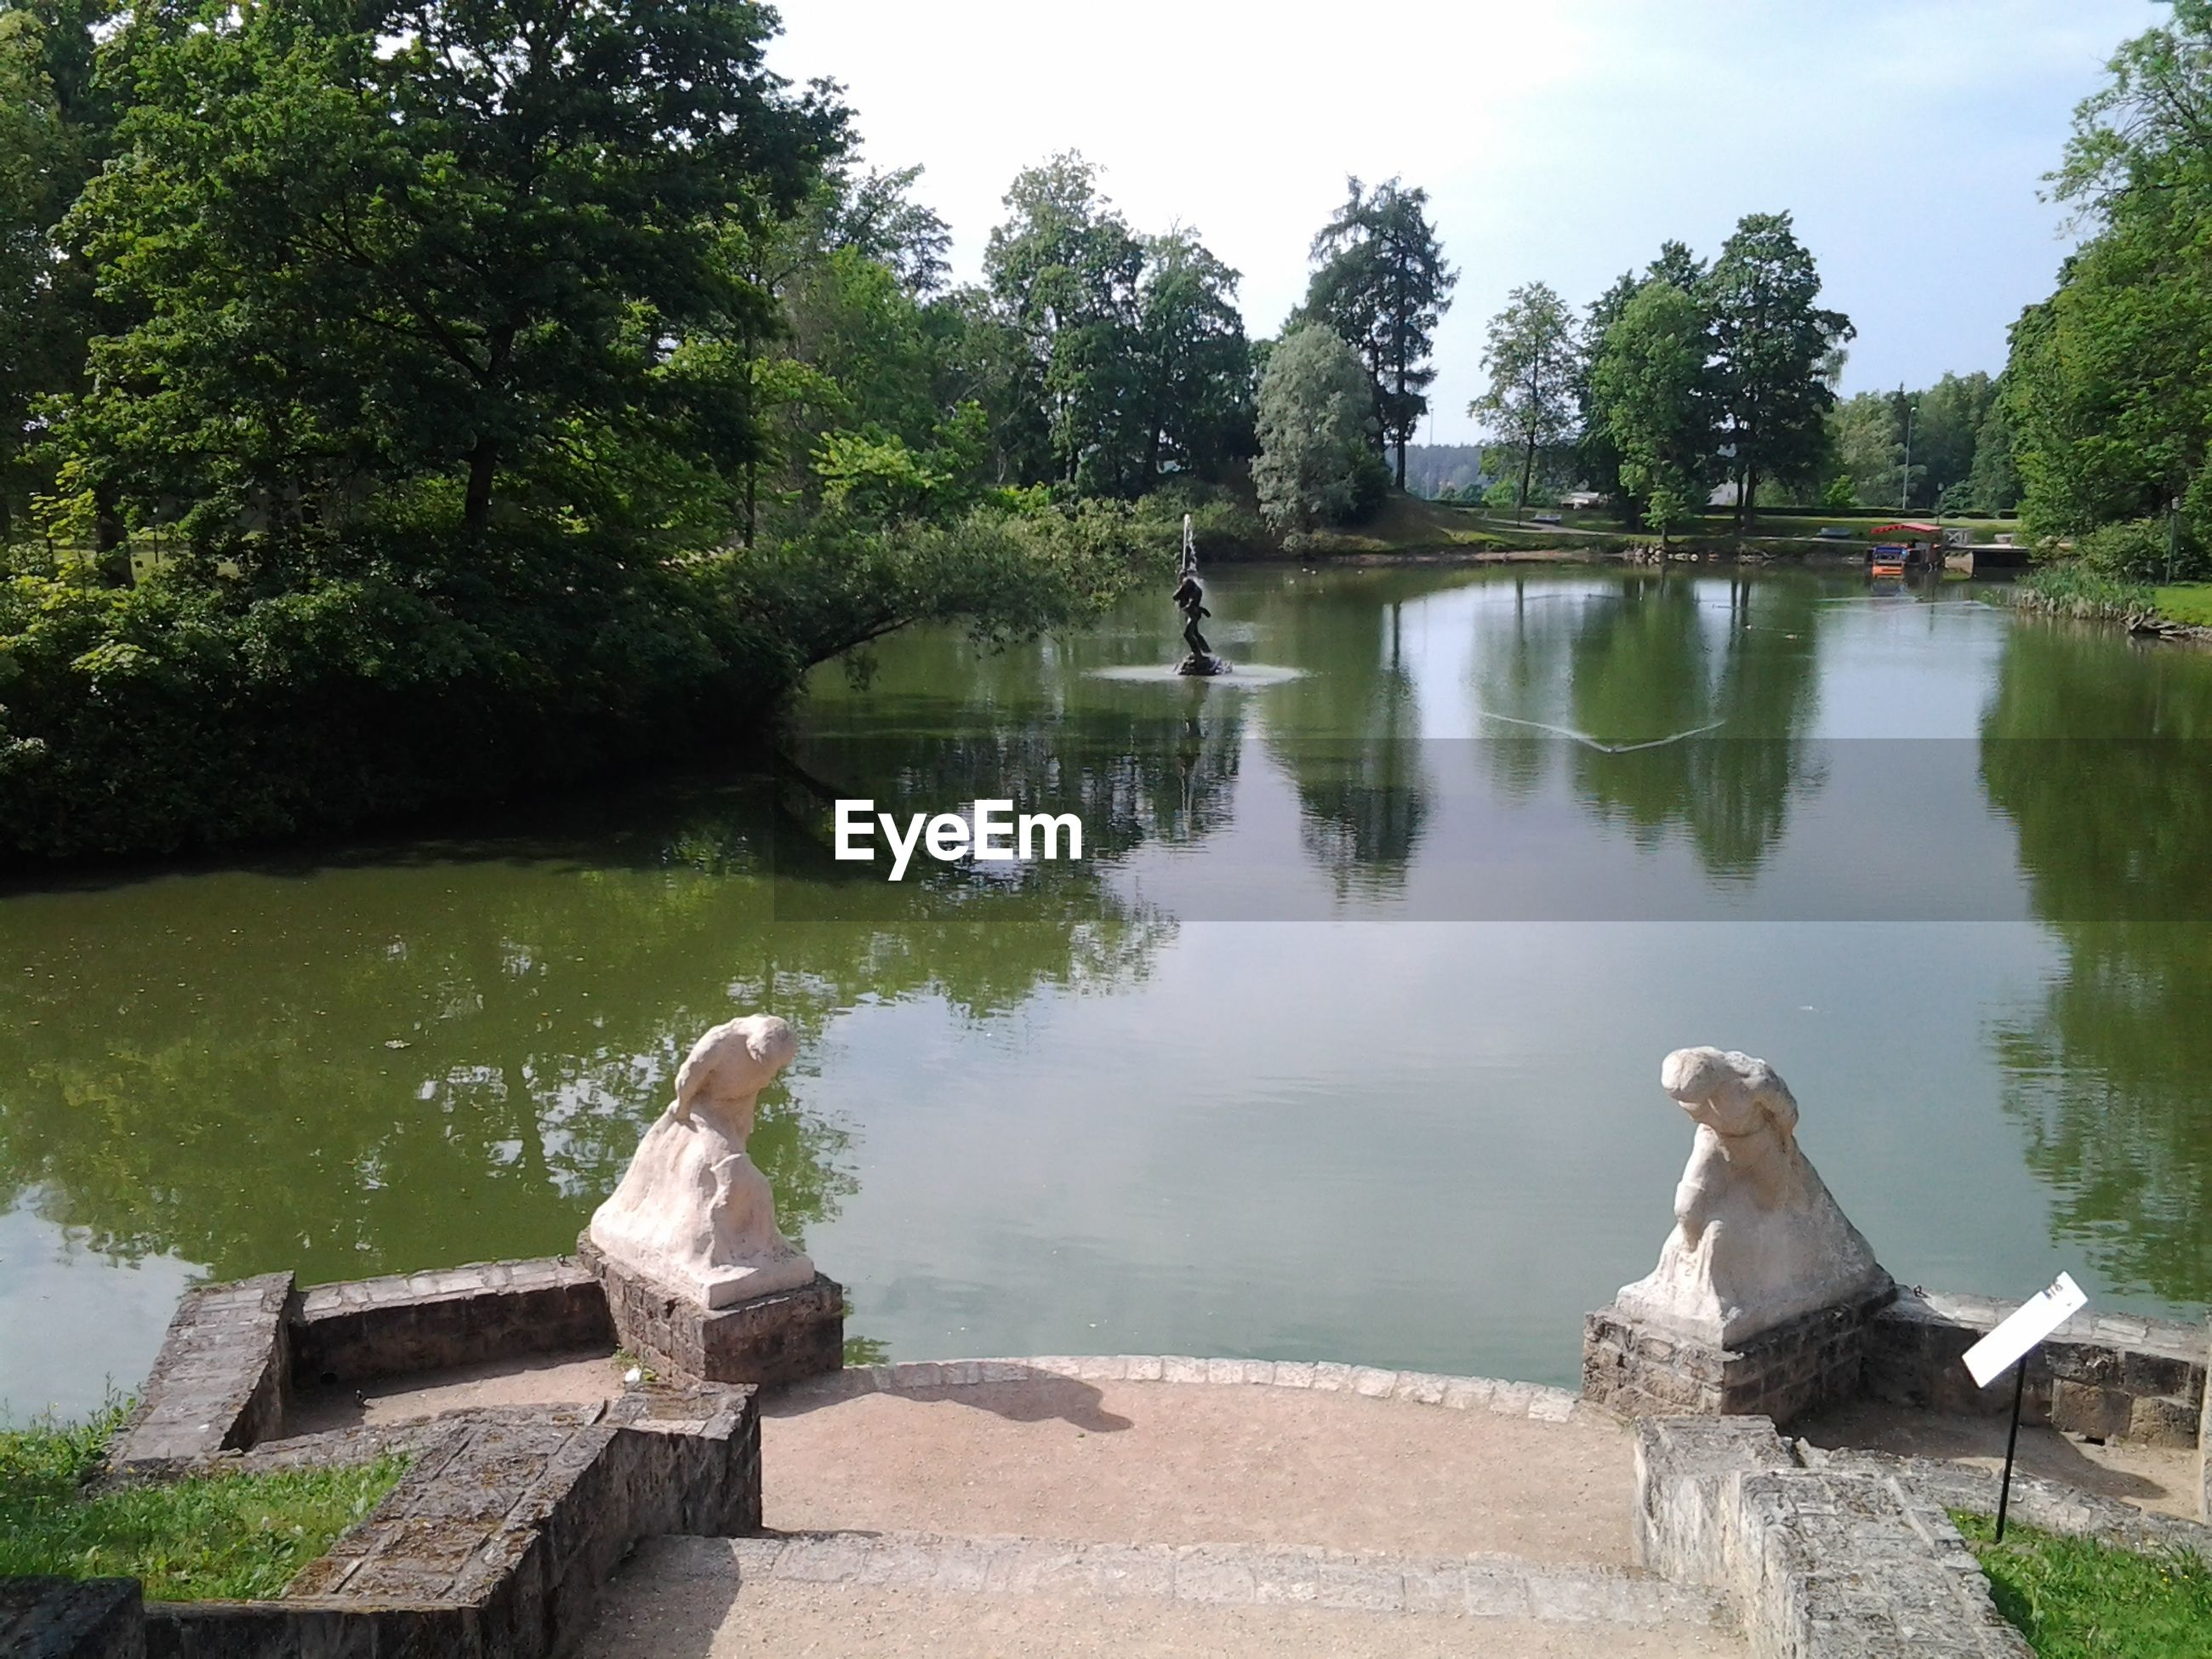 water, tree, lake, statue, sculpture, reflection, tranquility, nature, art and craft, pond, sky, green color, animal representation, day, human representation, park - man made space, art, tranquil scene, beauty in nature, outdoors